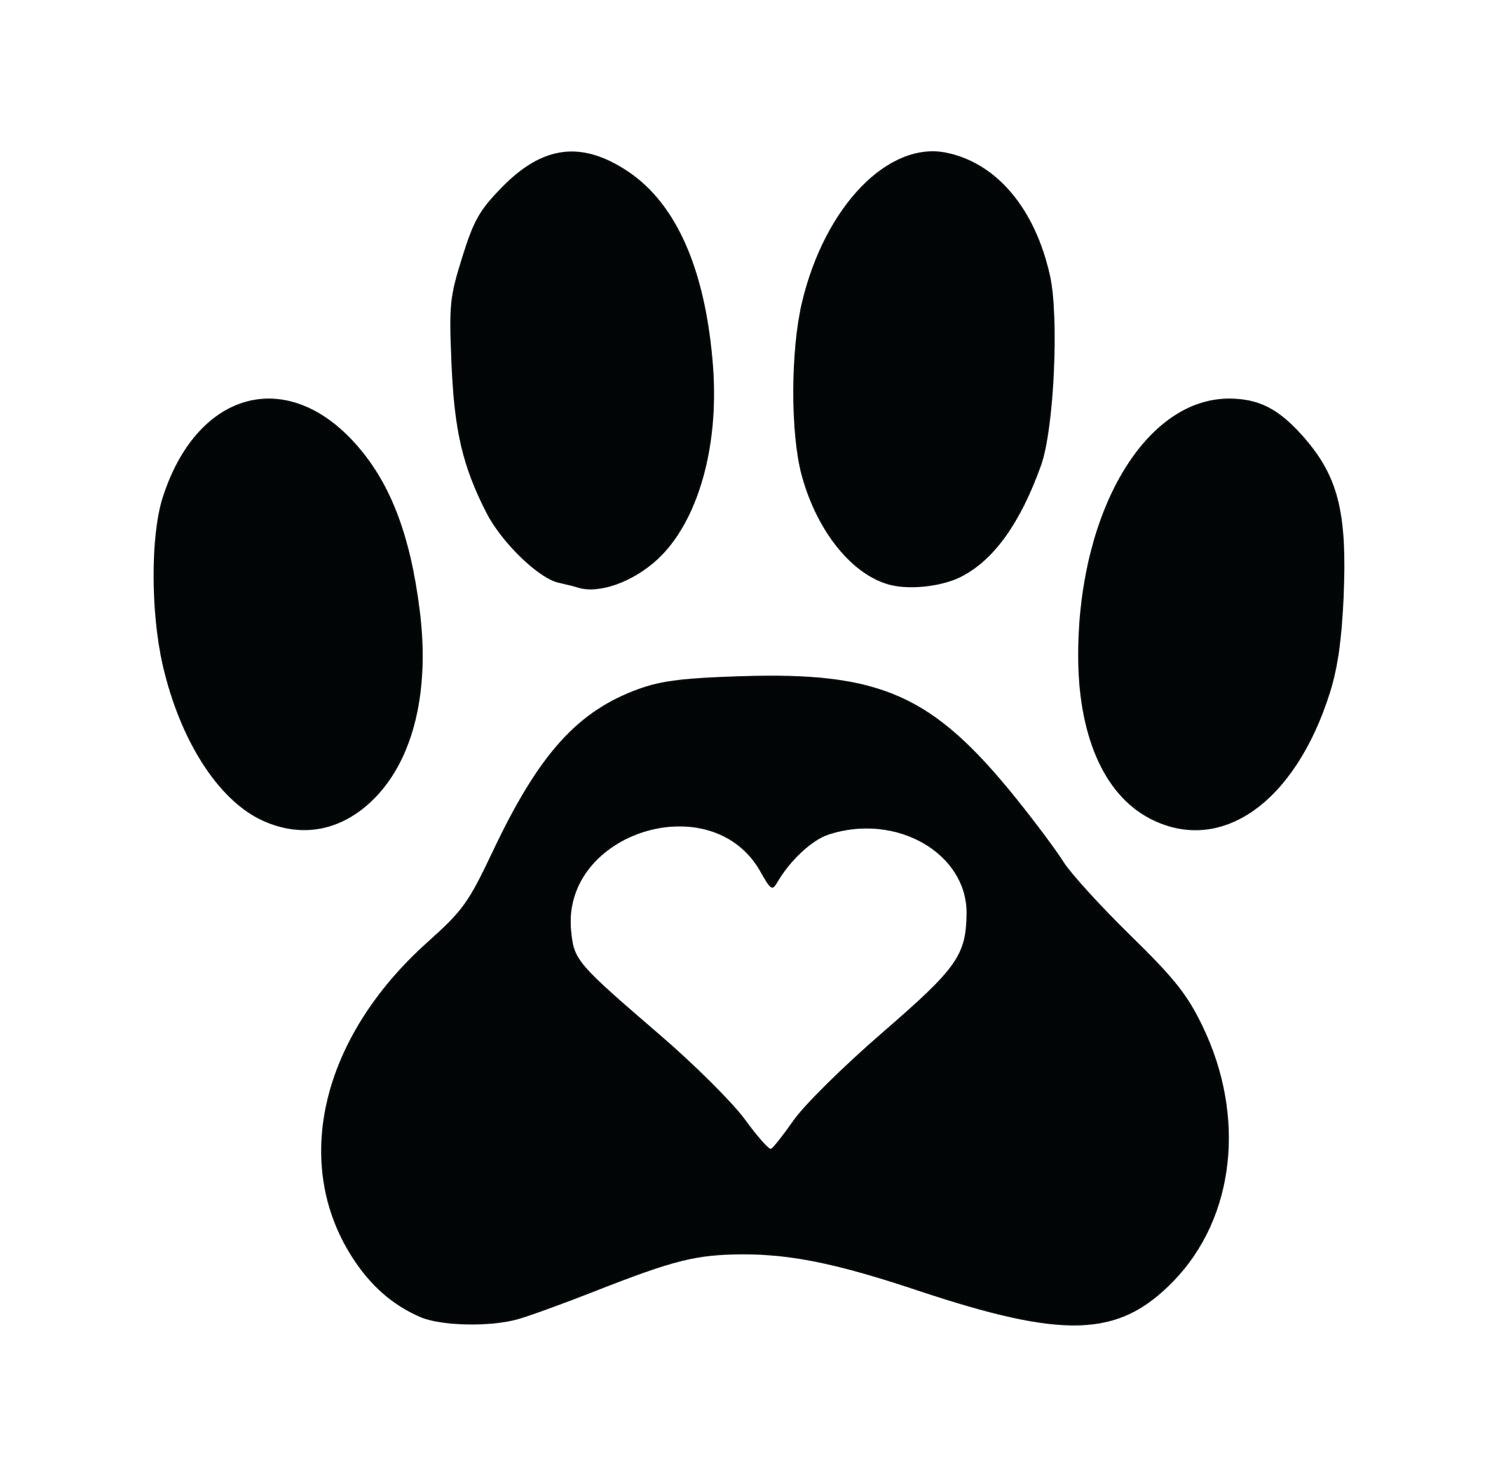 Animal nose free download. Paws clipart dawg